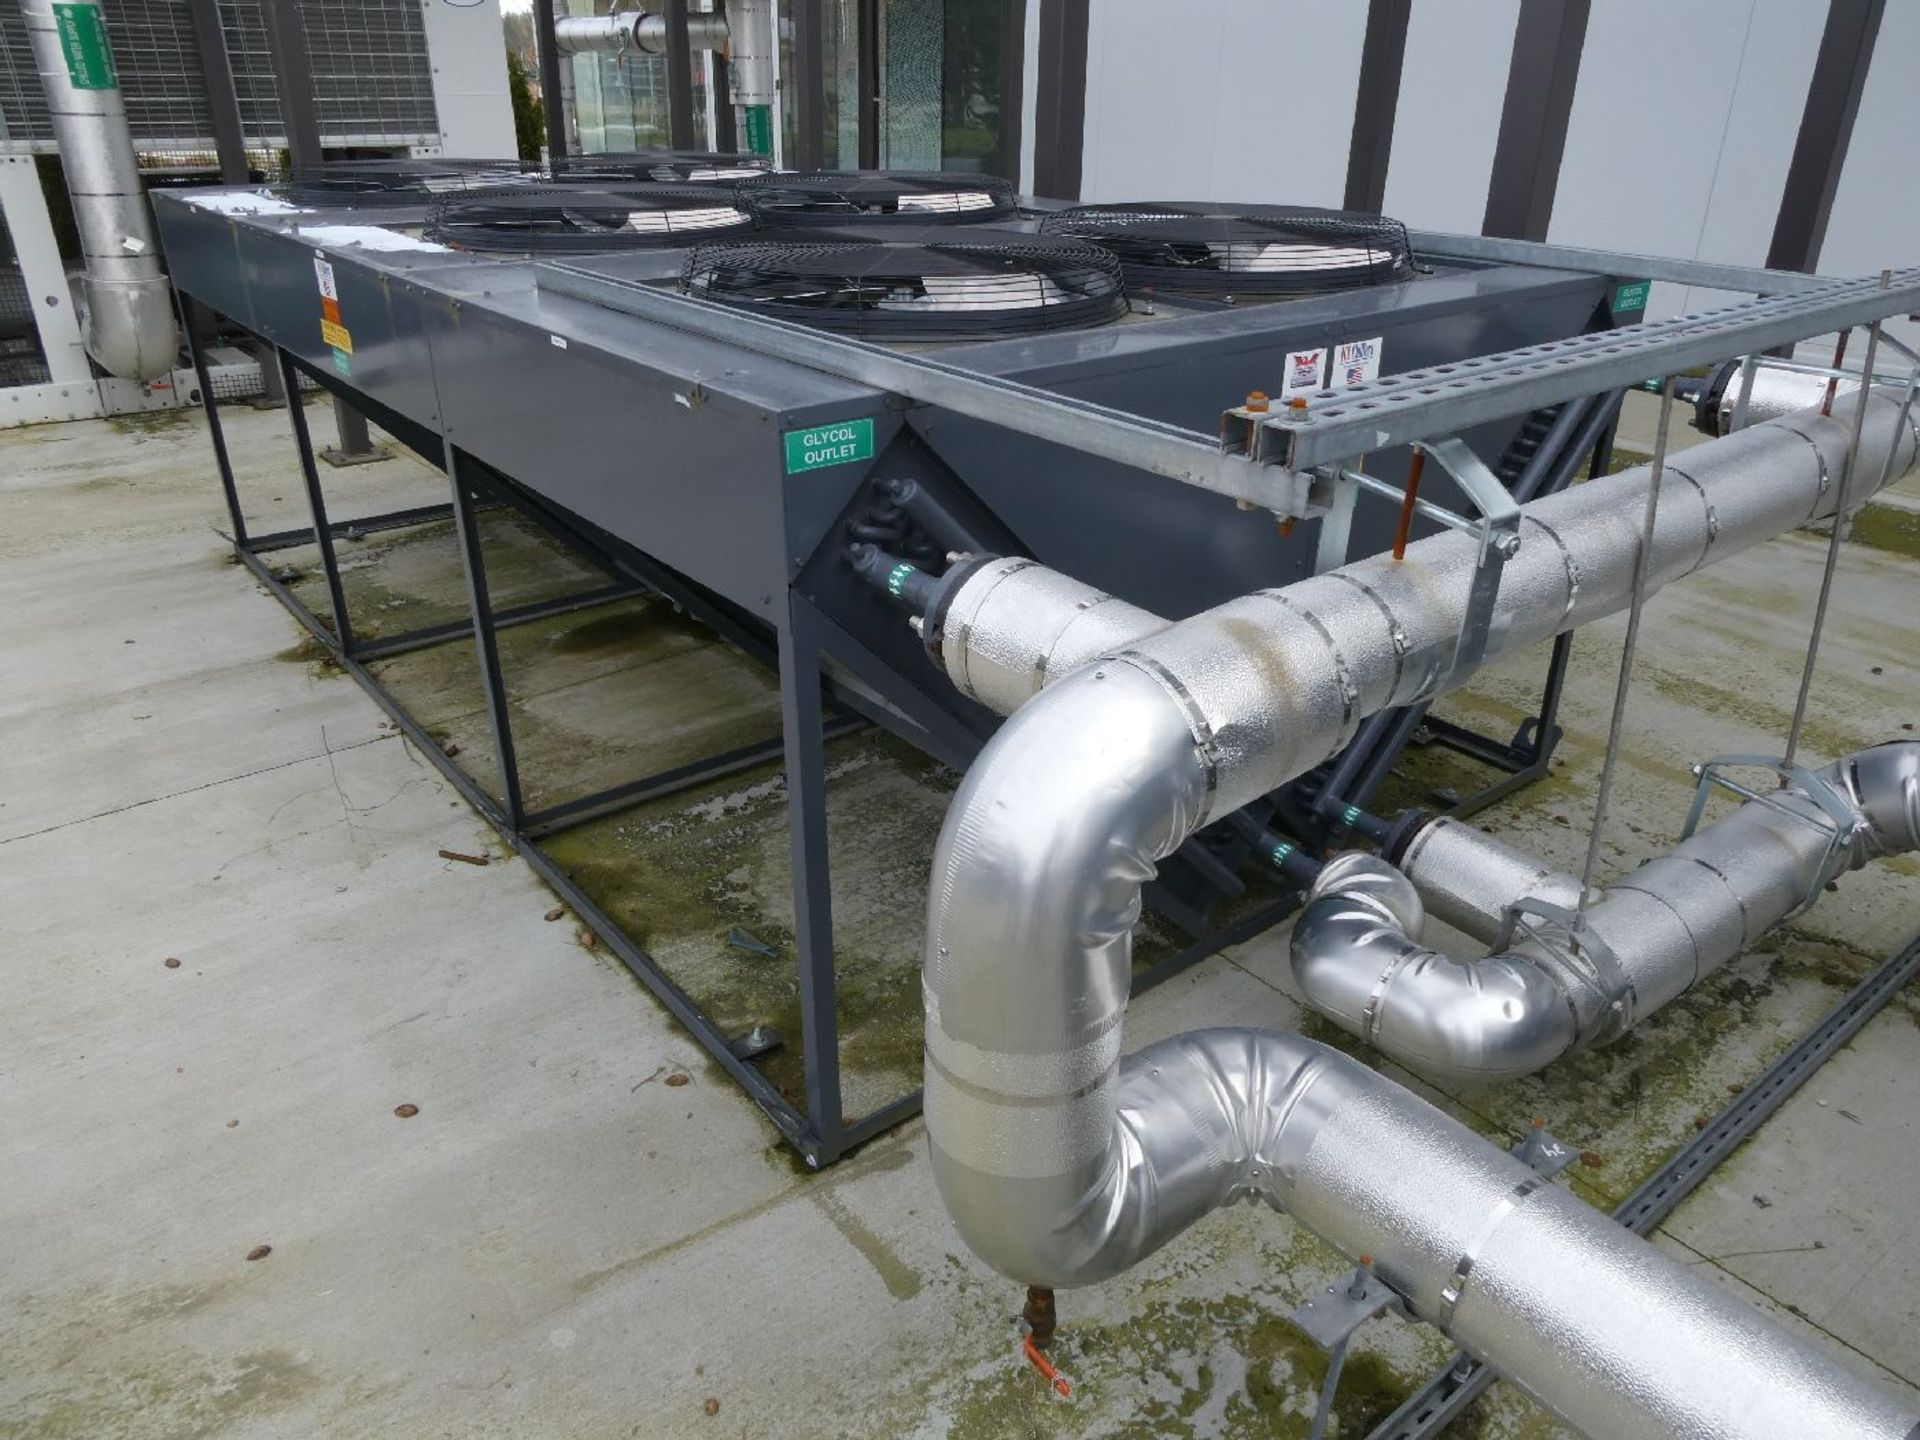 ROTAX Closed Loop Solvent Based Continuous Oil Extraction System - Image 64 of 68